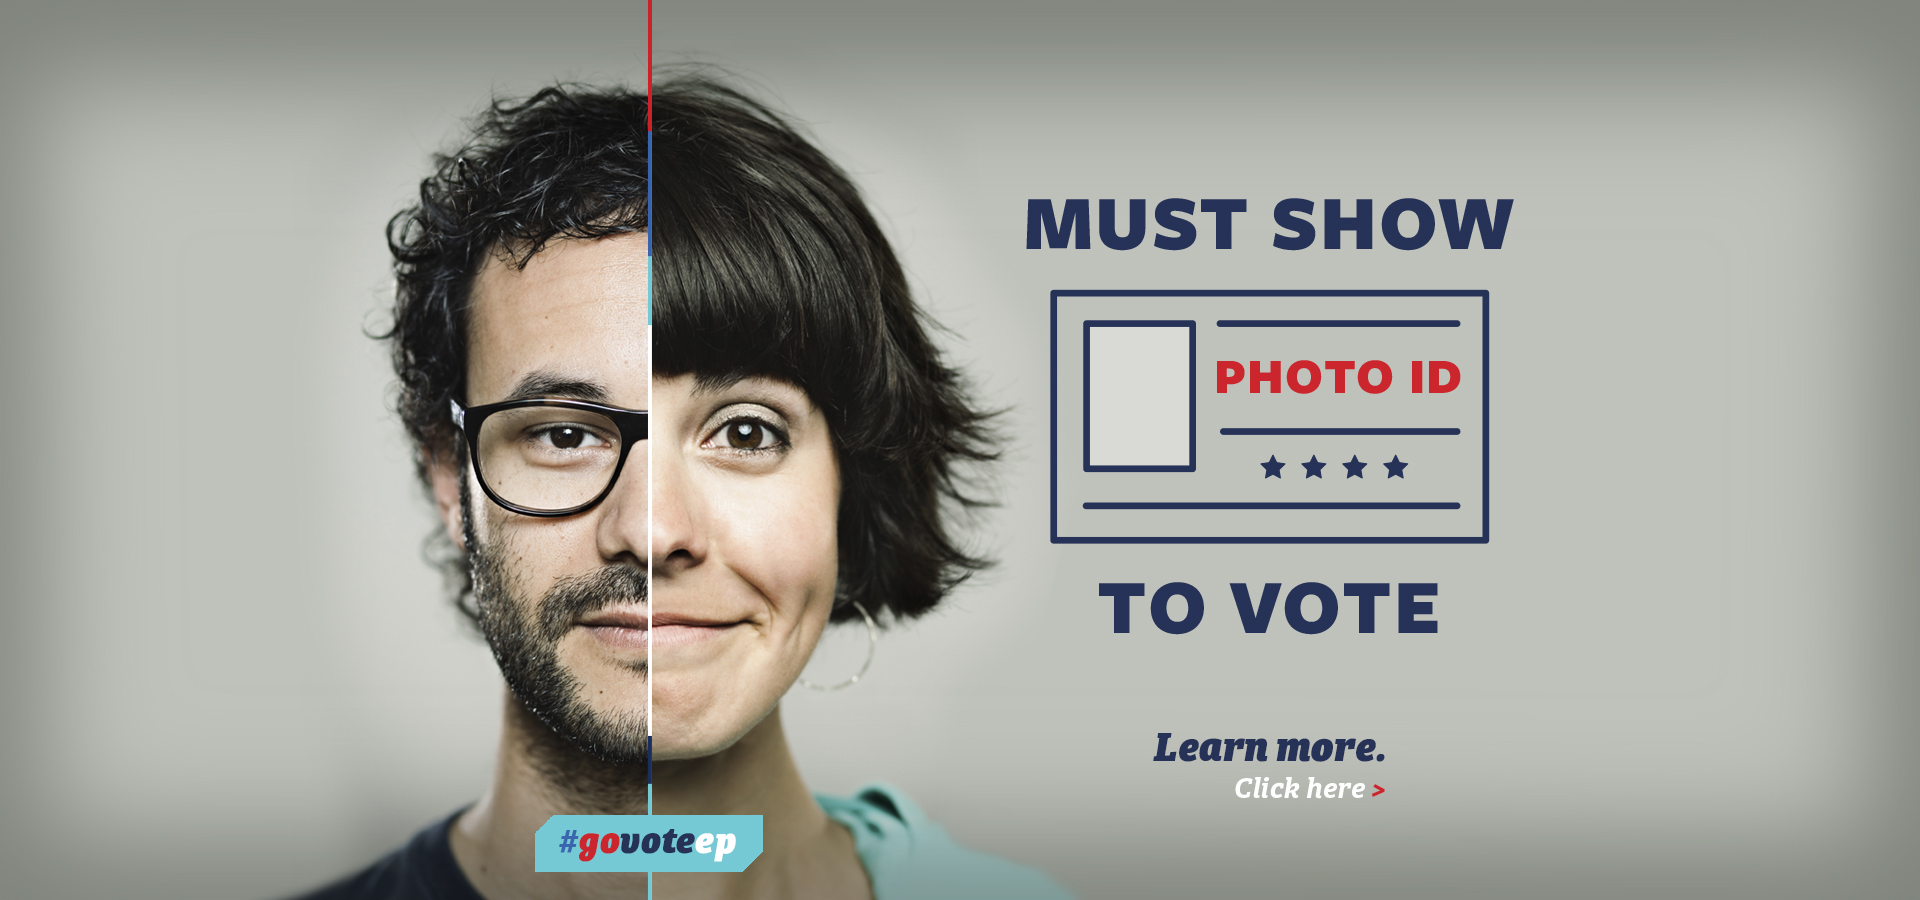 Must Show Photo ID To Vote